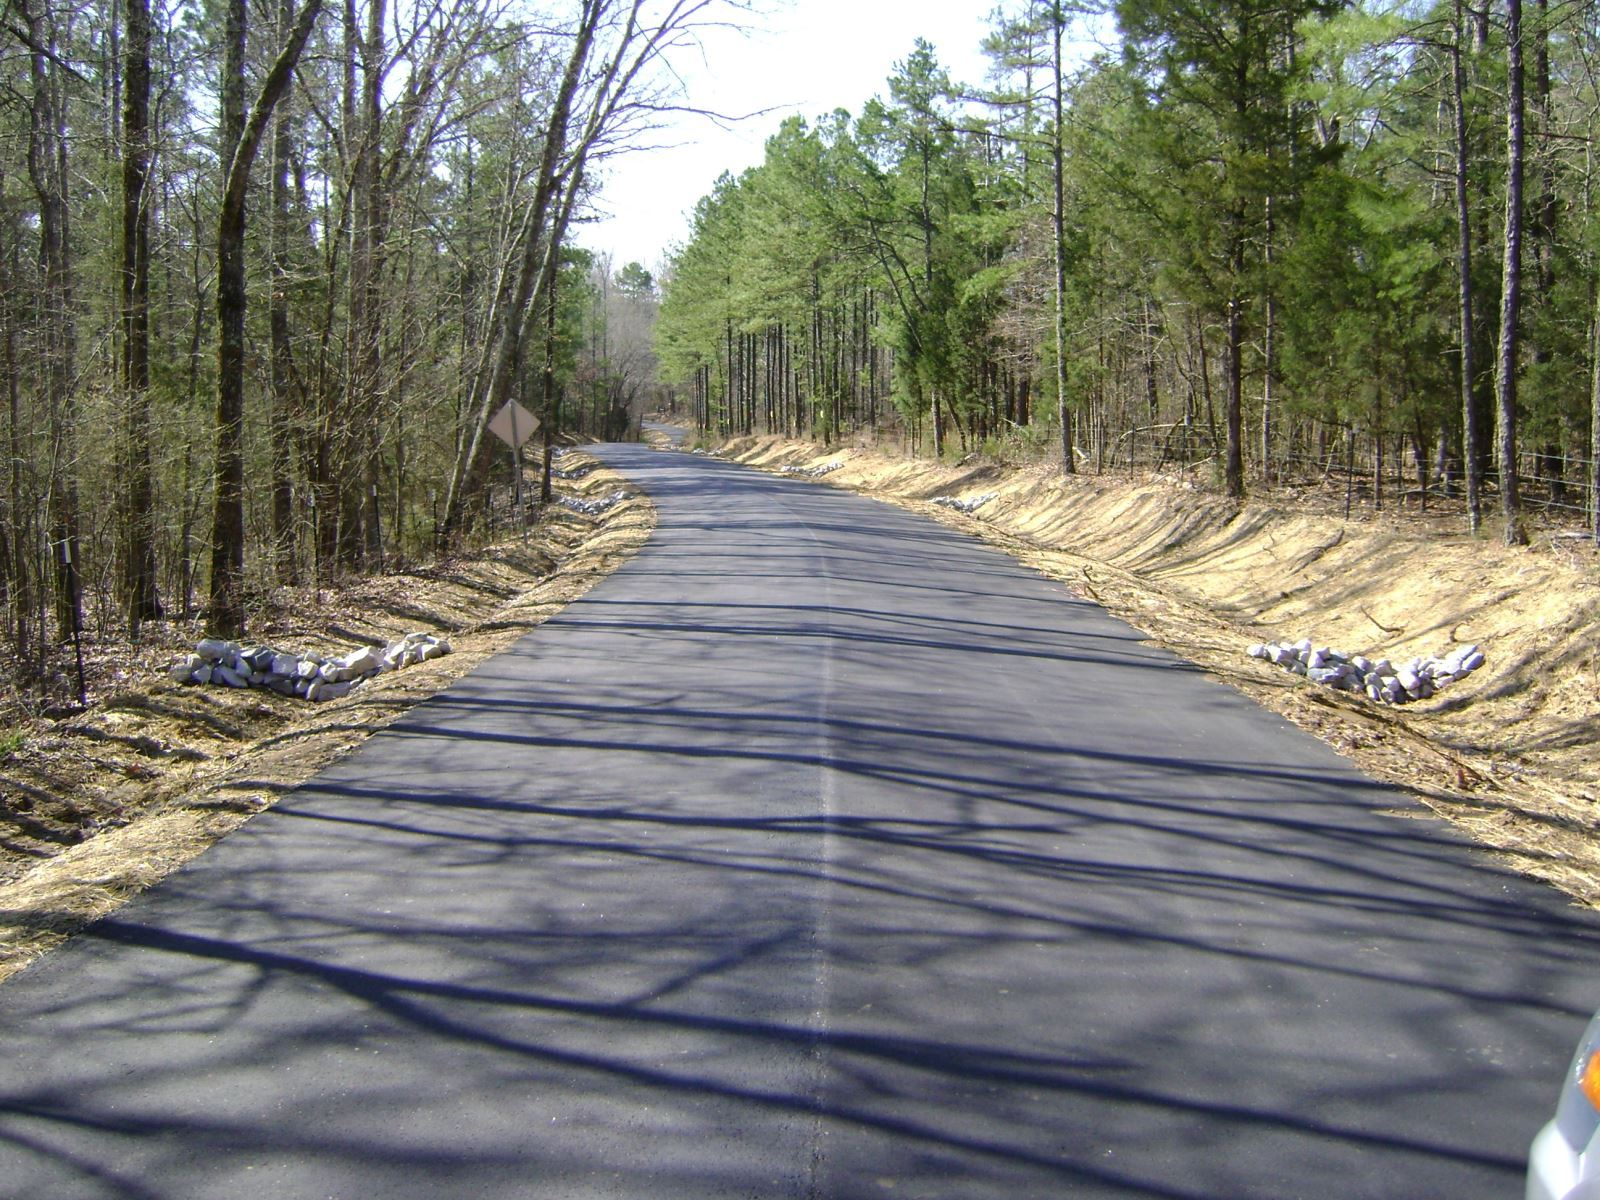 Image of paved road, no lines, that is lined with trees